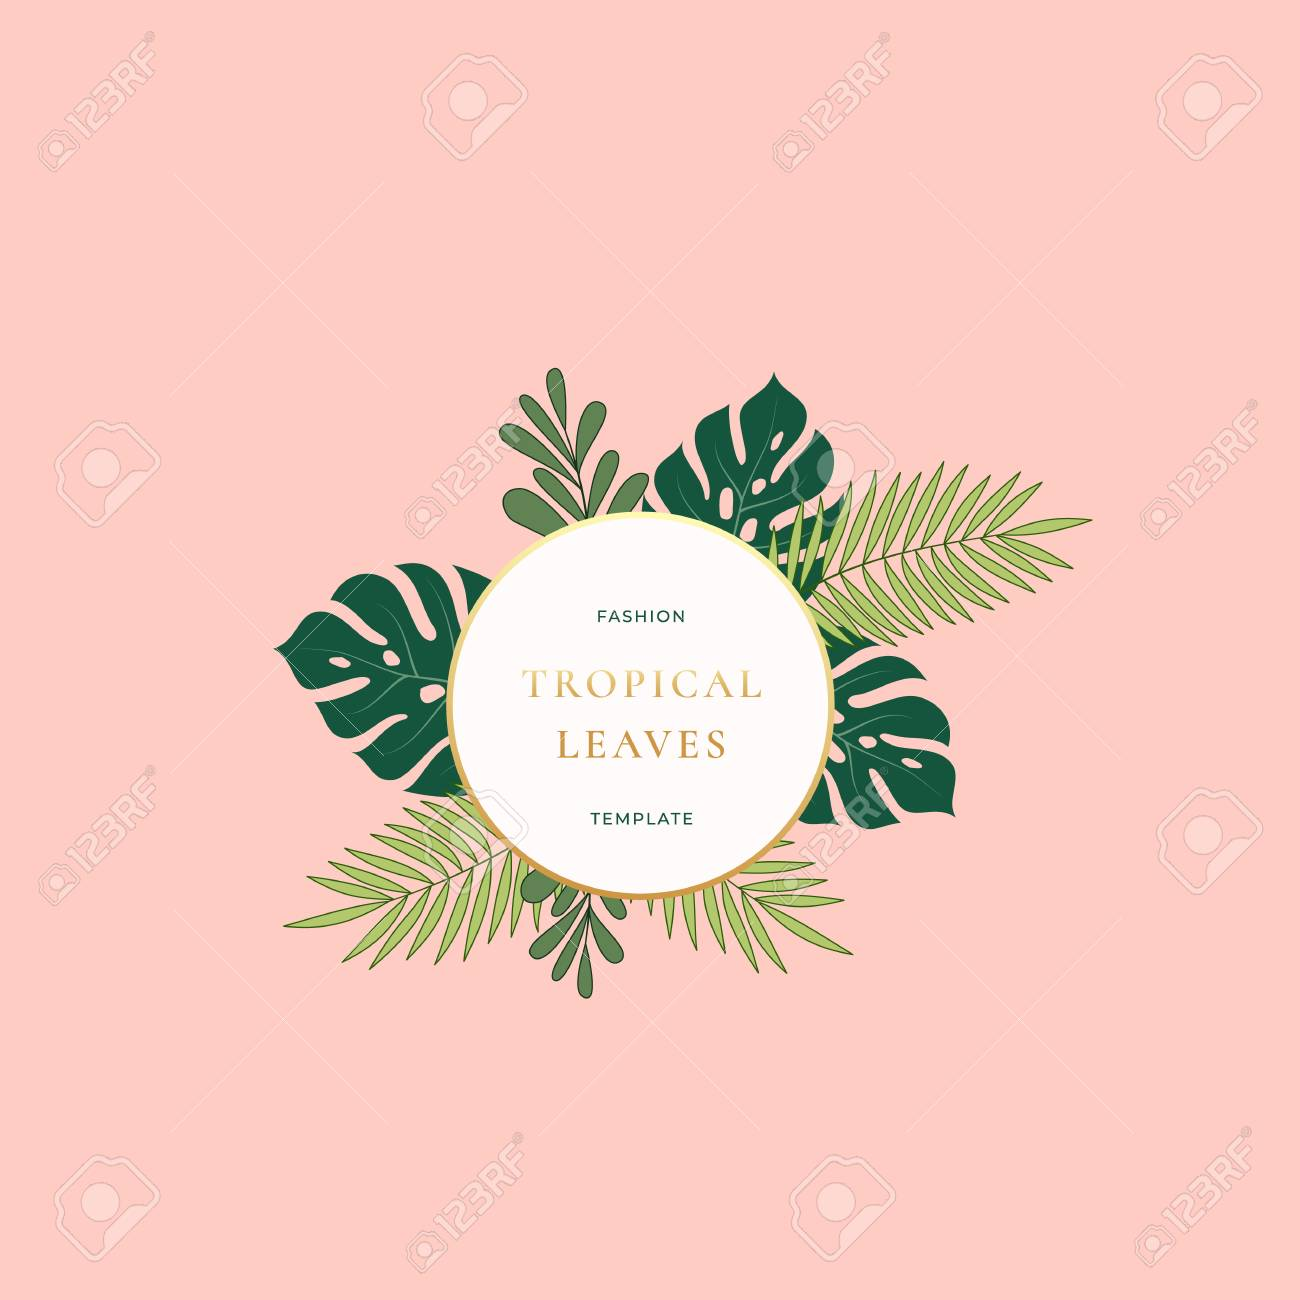 Monstera Palm Tropical Leaves Fashion Sign Emblem Card Or Logo Royalty Free Cliparts Vectors And Stock Illustration Image 94975827 Choose from over a million free vectors, clipart graphics, vector art images, design templates, and illustrations created by artists worldwide! monstera palm tropical leaves fashion sign emblem card or logo